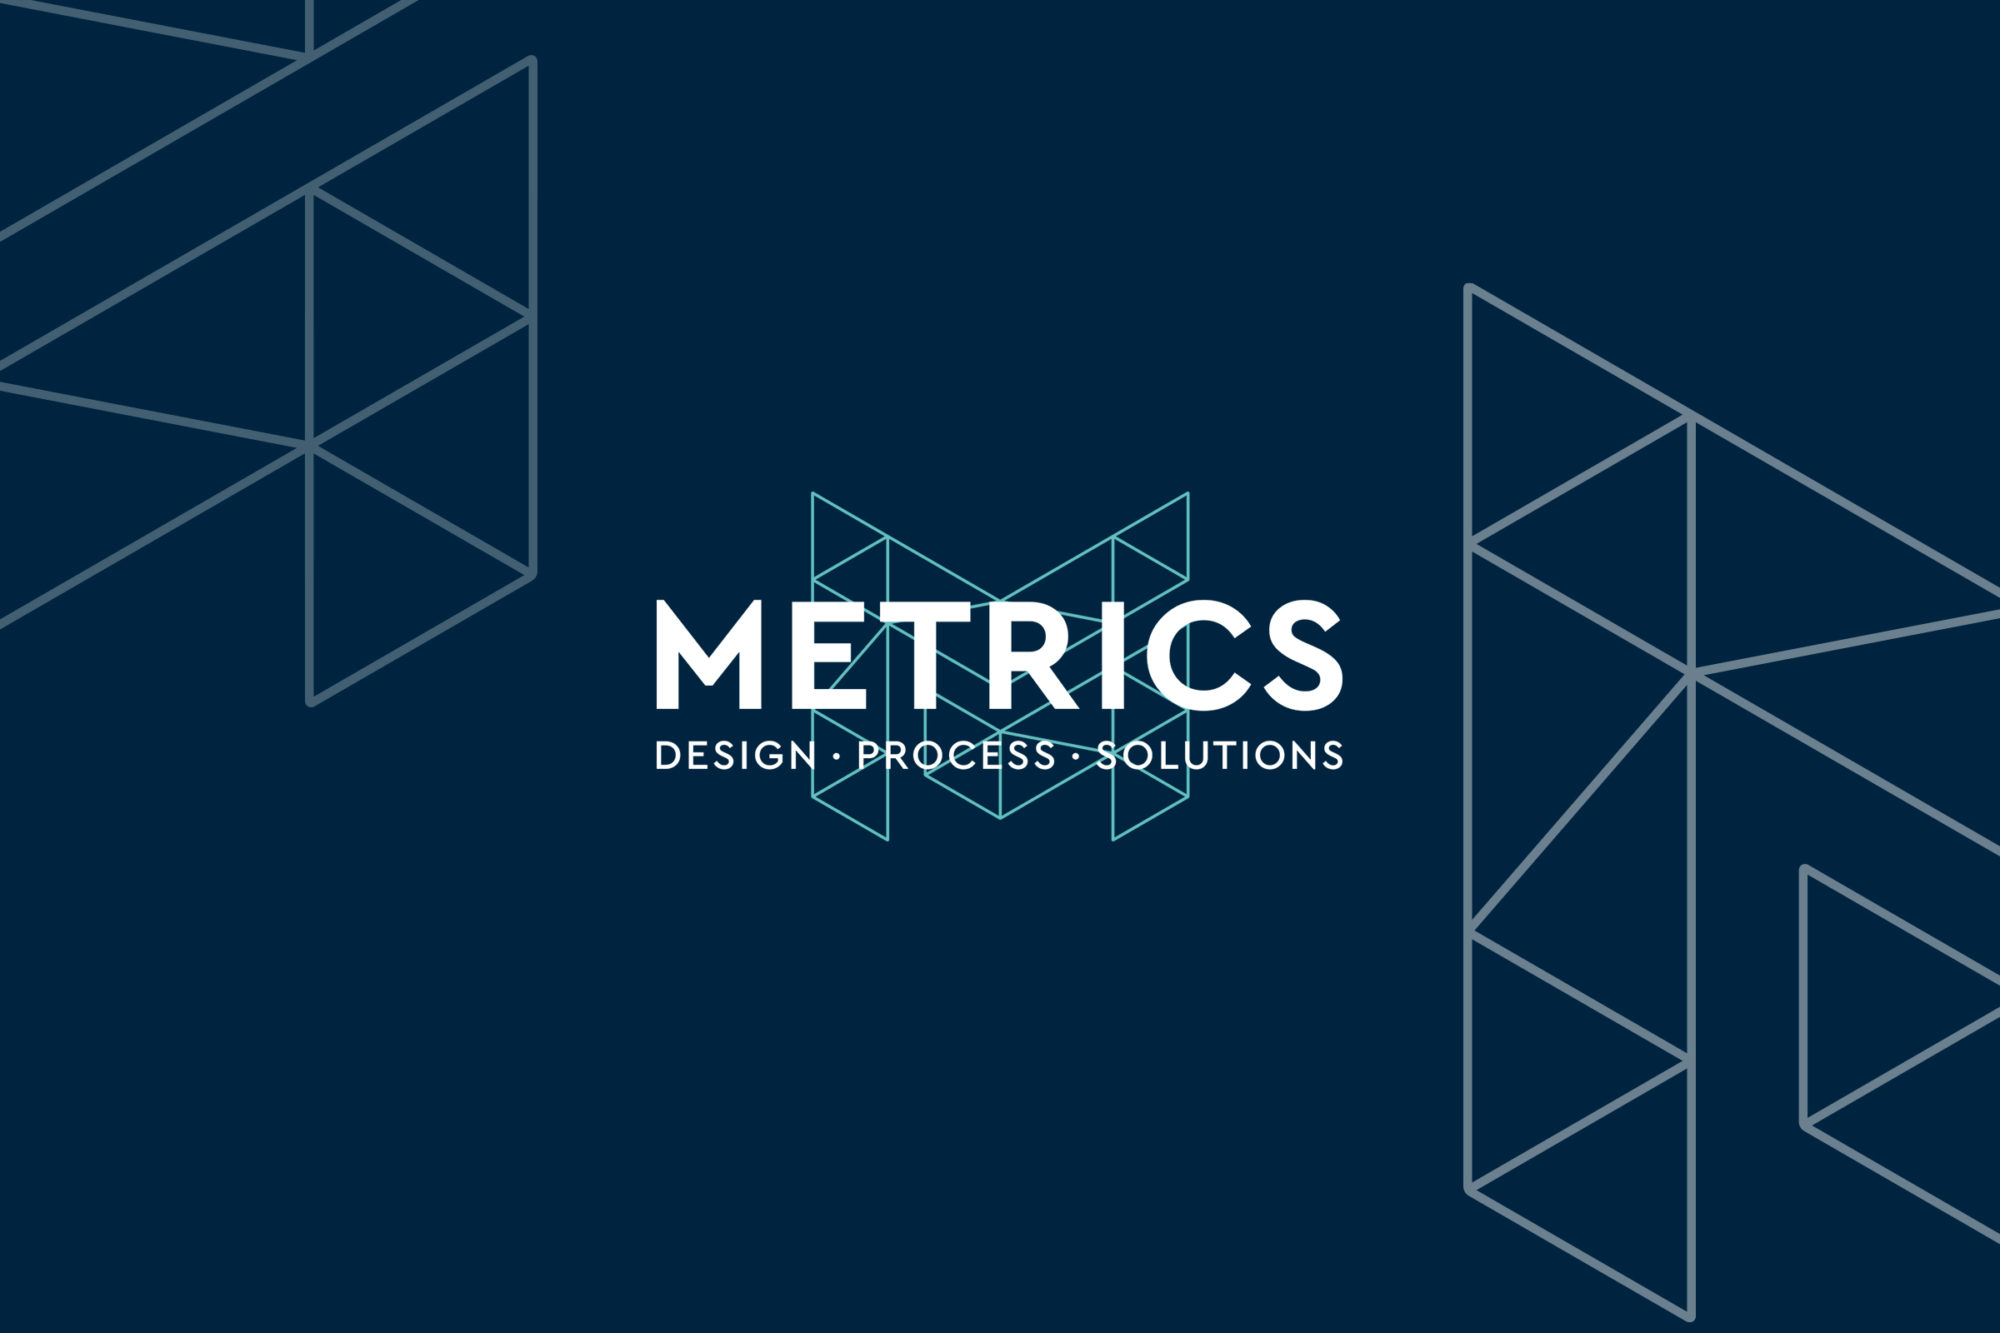 Metrics Design Logo on Blue